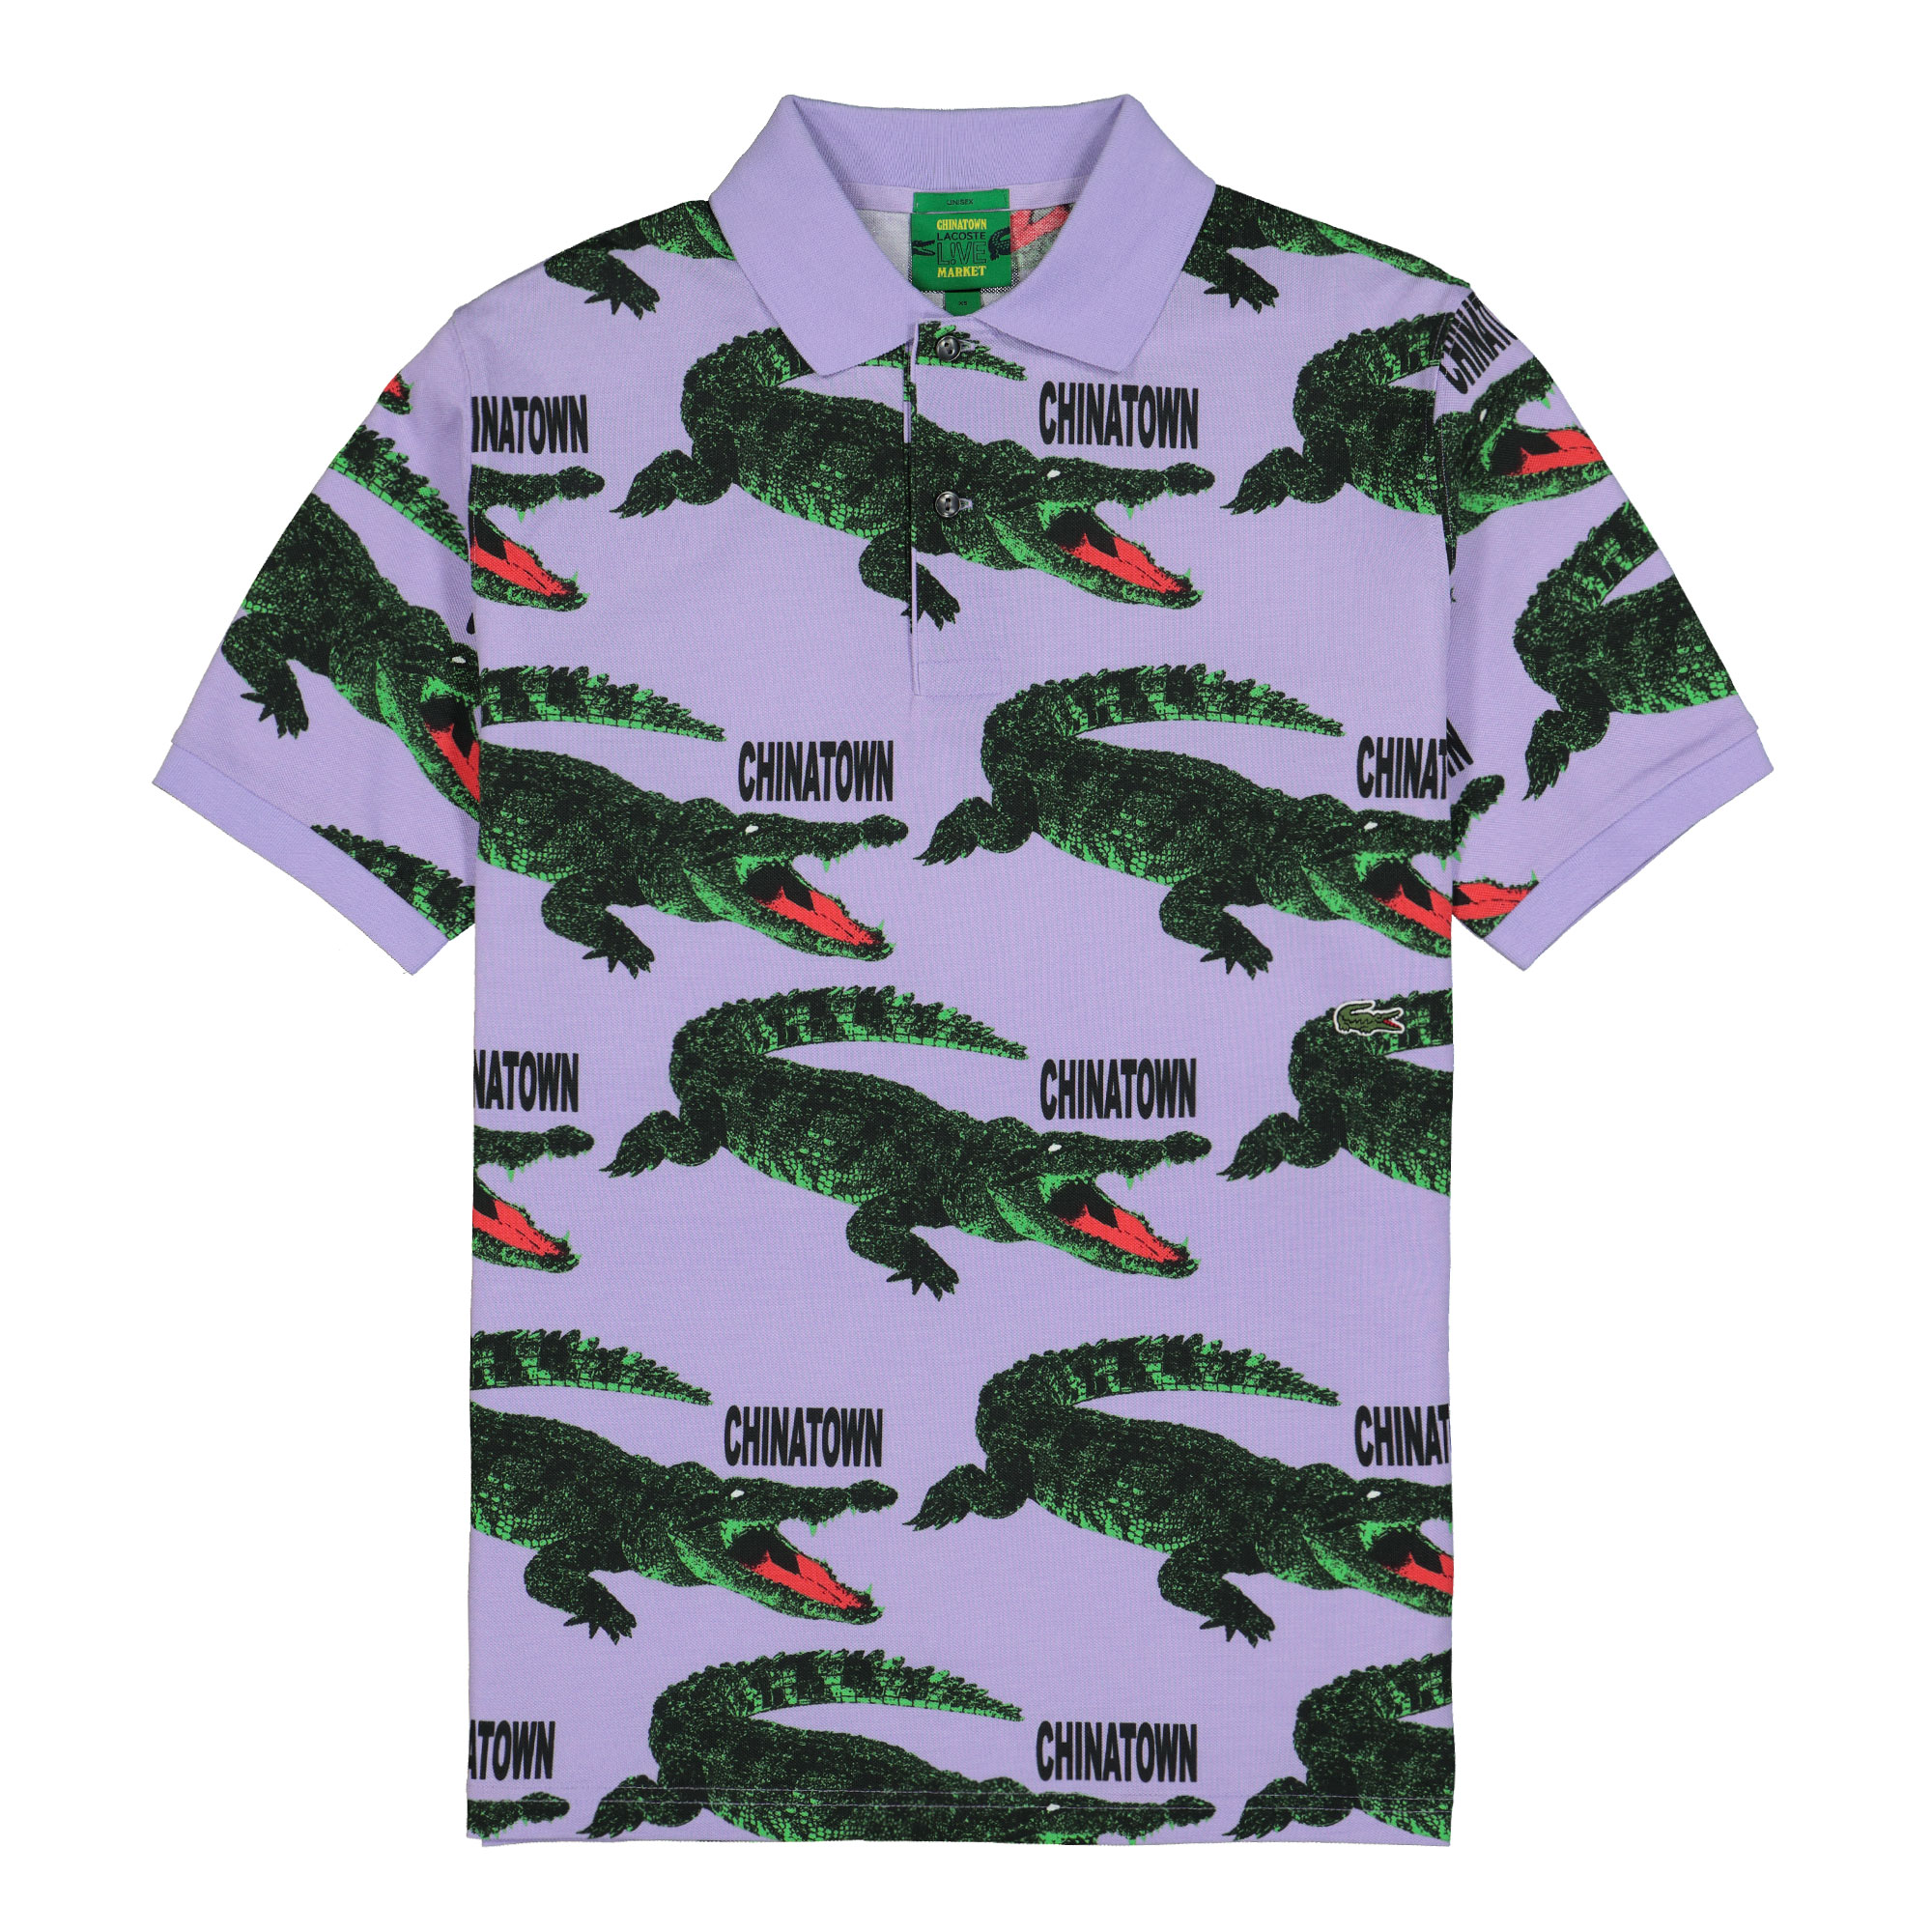 Chinatown Market X Lacoste Polo Shirt Ph0116 00 J7z Overkill Berlin Sneaker Wear Graffiti